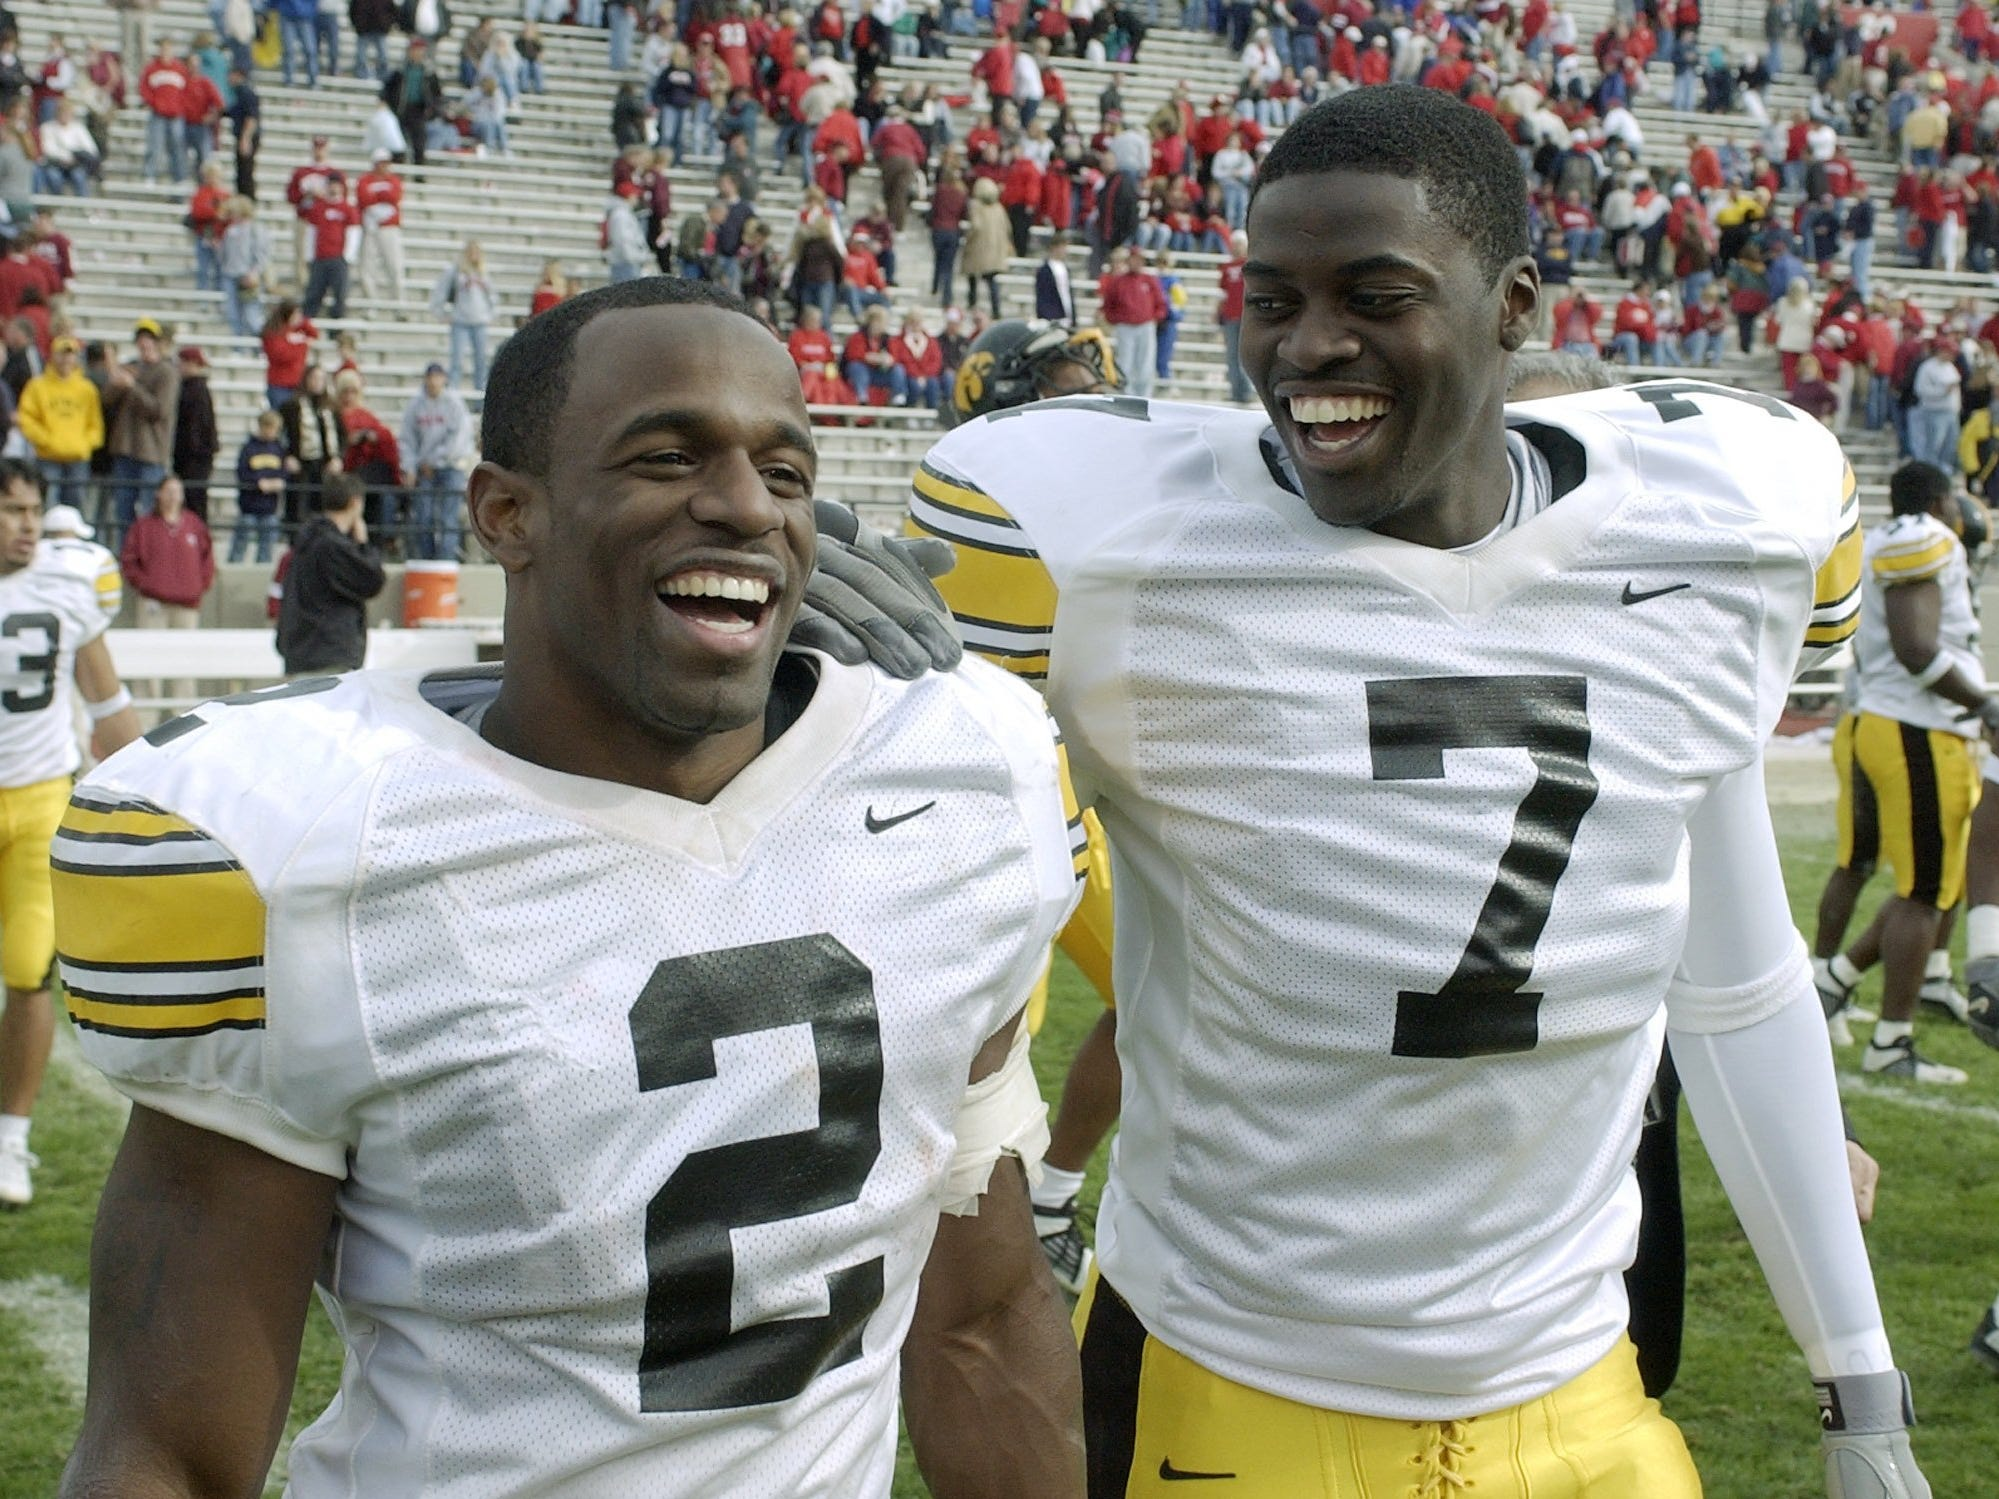 Iowa running back Fred Russell, left, jokes with quarterback Brad Banks after their 24-8 victory over Indiana in Bloomington, Indiana on Oct. 19, 2002. Russell had 100 yards rushing and two touchdowns. Banks passed for 190 yards and one touchdown.